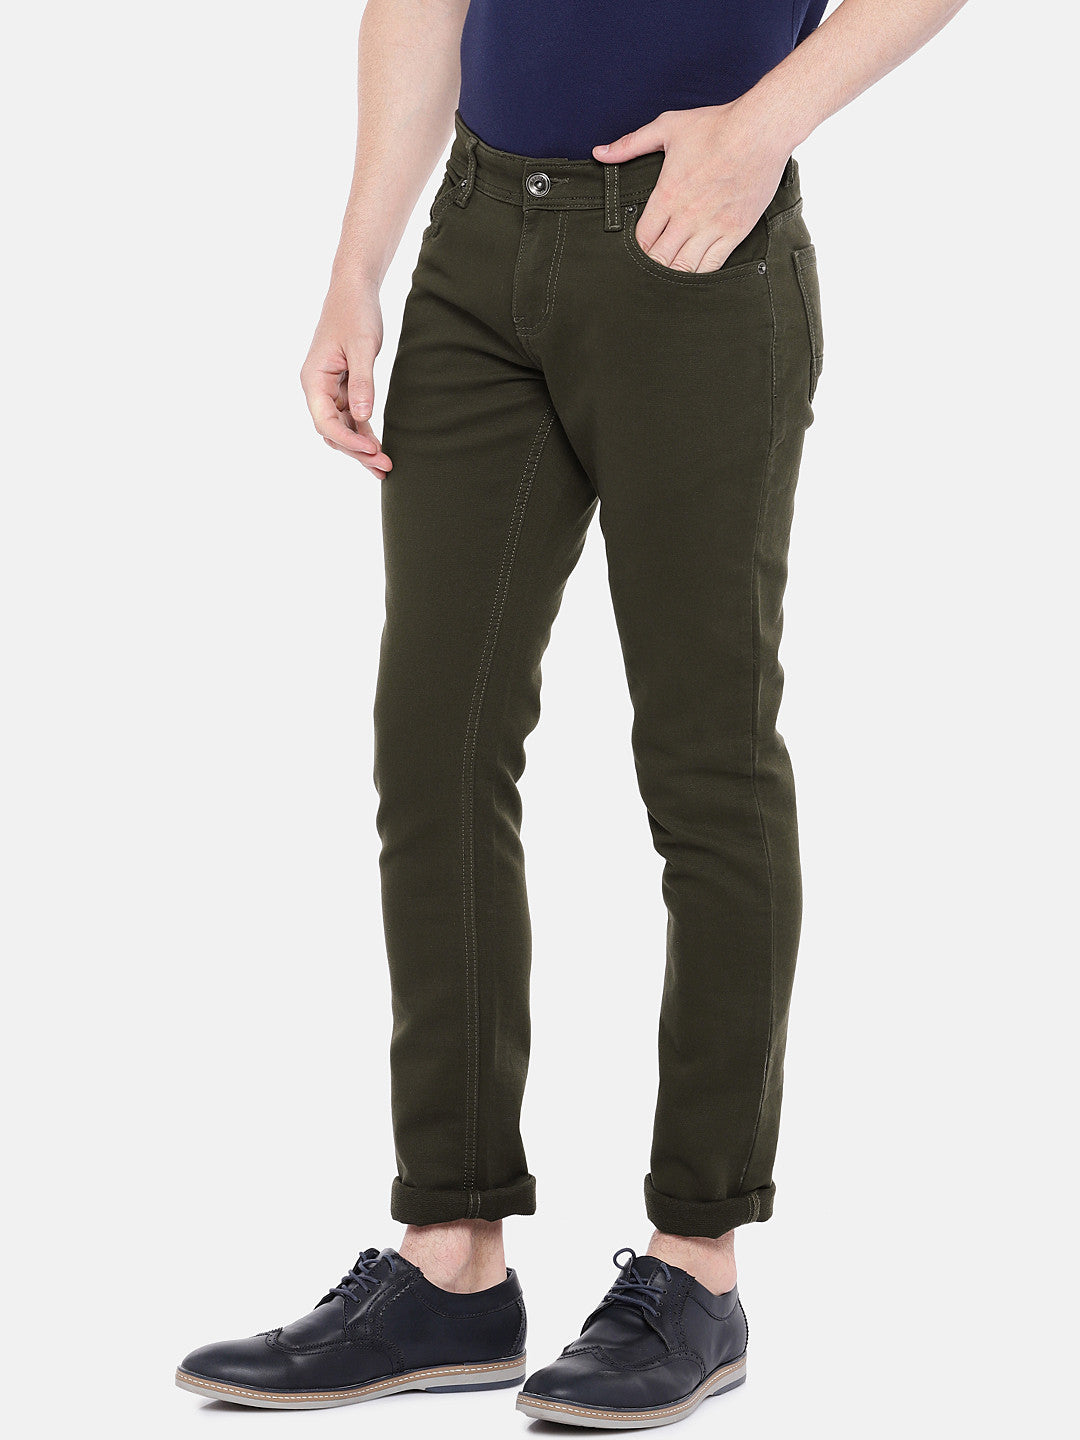 Olive Green Regular Fit Solid Chinos-2